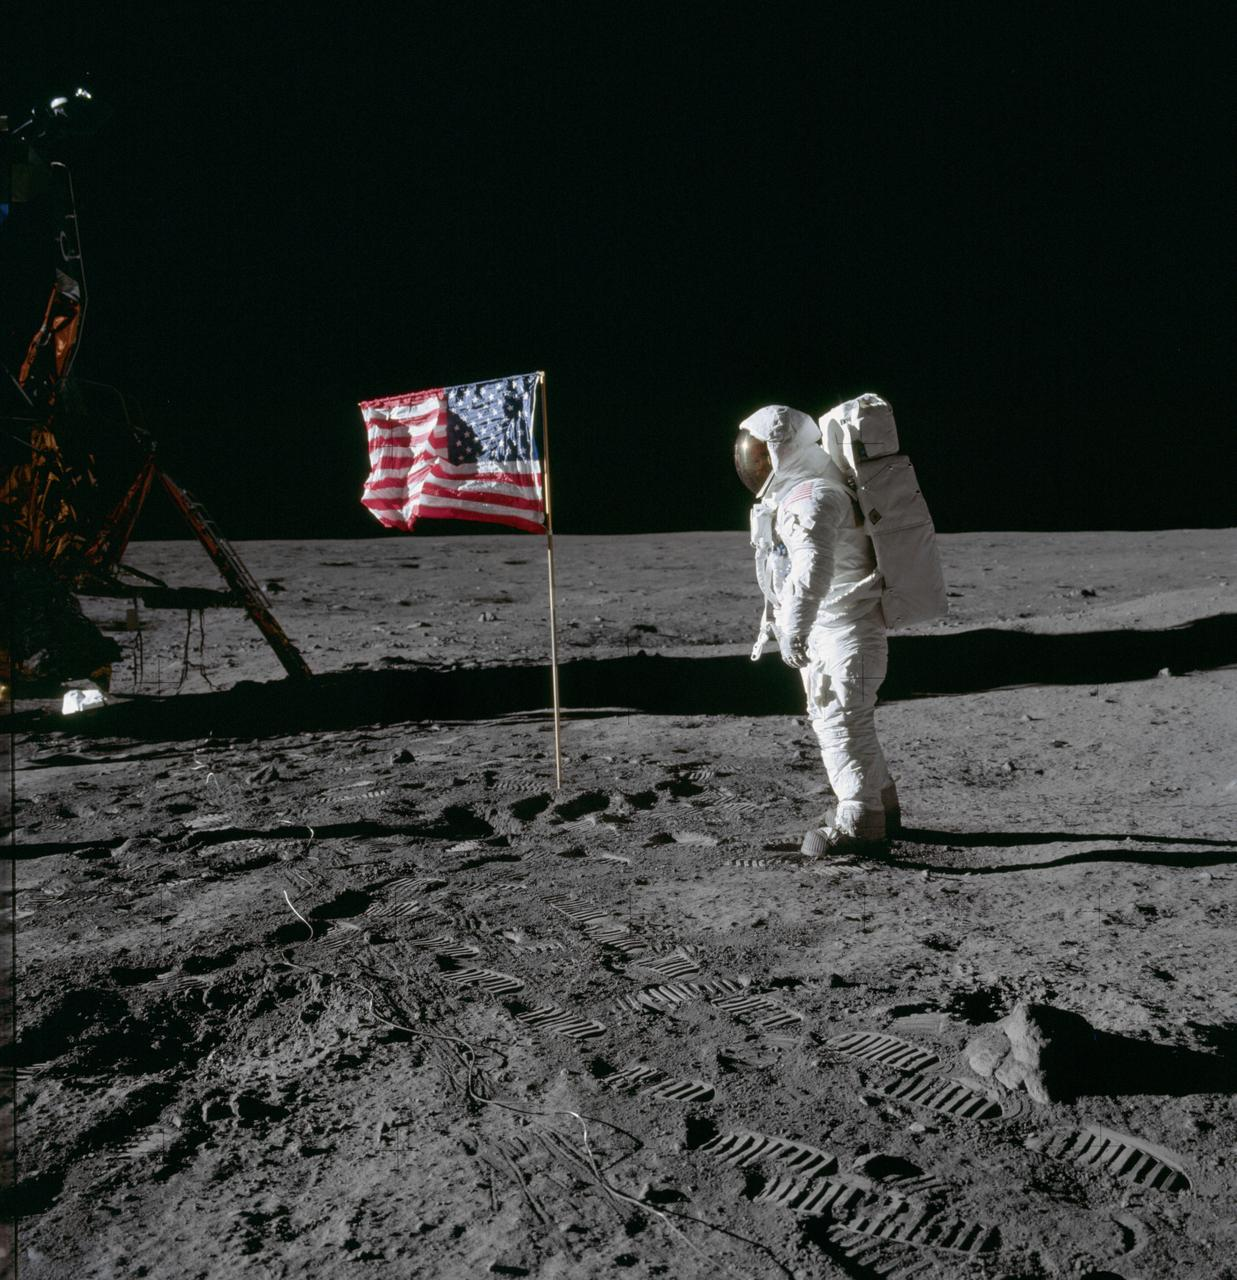 (20 July 1969) --- Astronaut Edwin E. Aldrin Jr., lunar module pilot of the first lunar landing mission, poses for a photograph beside the deployed United States flag during an Apollo 11 extravehicular activity (EVA) on the lunar surface. The Lunar Module (LM) is on the left, and the footprints of the astronauts are clearly visible in the soil of the moon. Astronaut Neil A. Armstrong, commander, took this picture with a 70mm Hasselblad lunar surface camera. While astronauts Armstrong and Aldrin descended in the LM, the